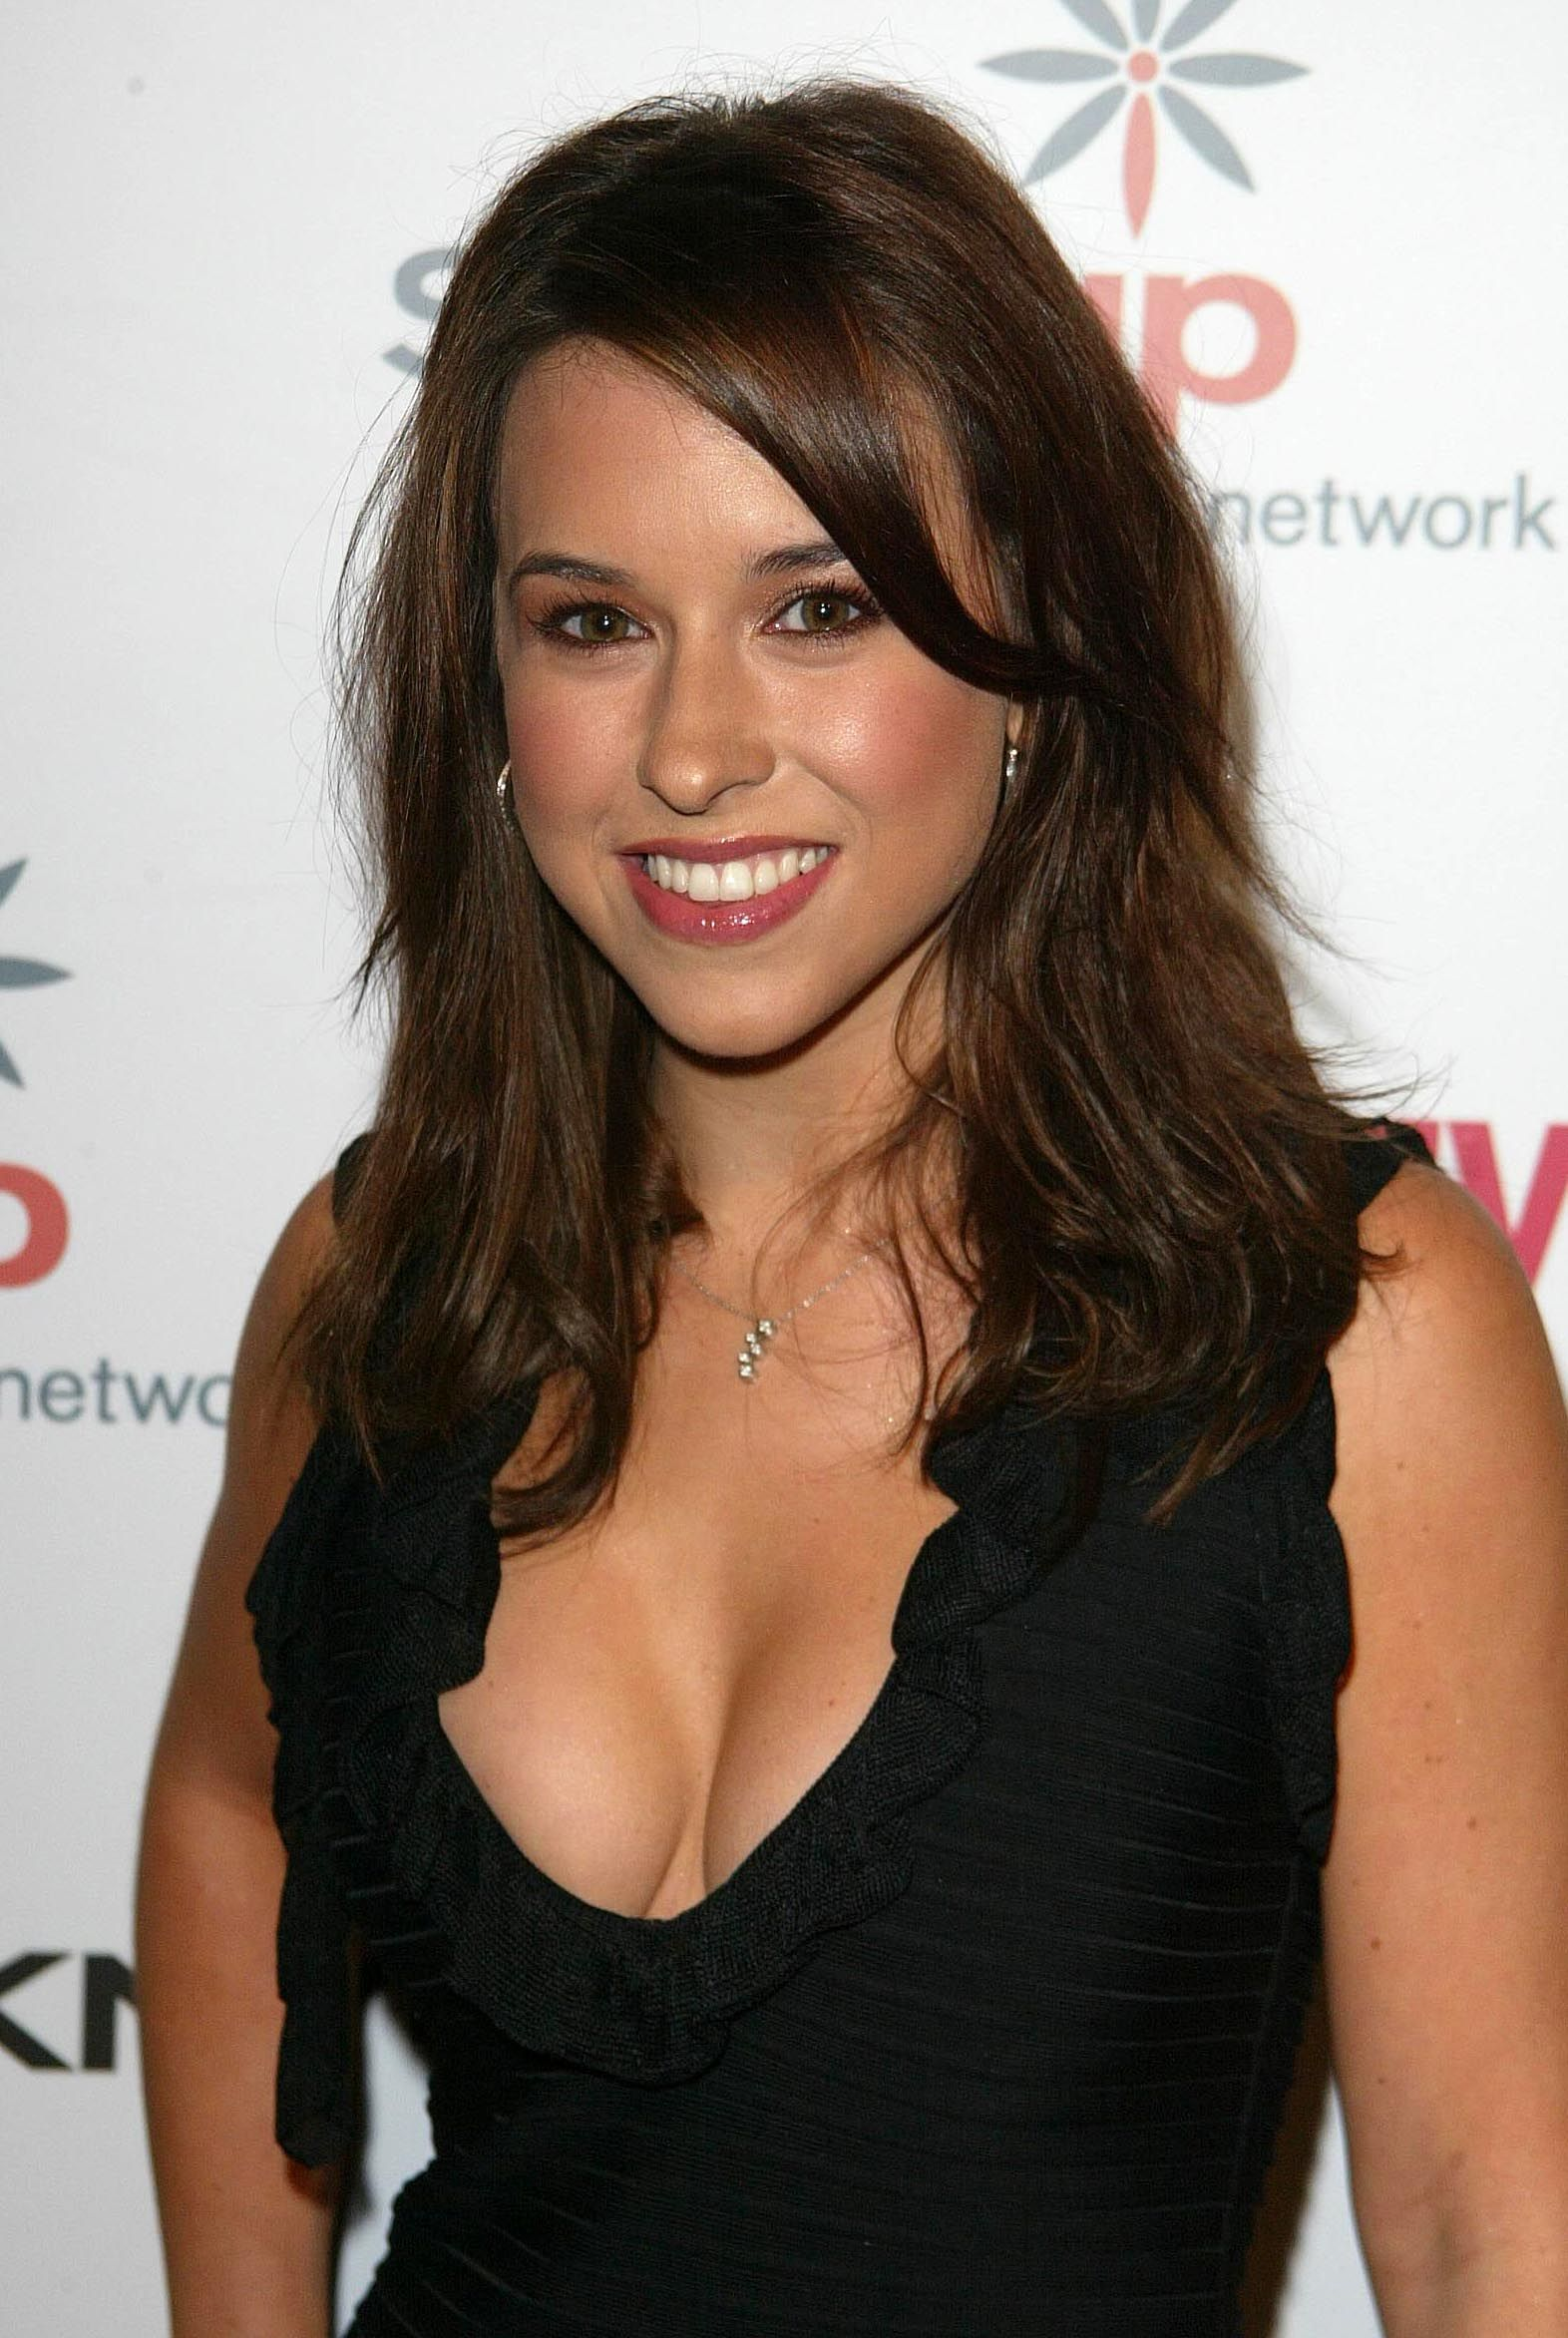 lacey chabert @ cleavage unknown shoot-2 shown to user